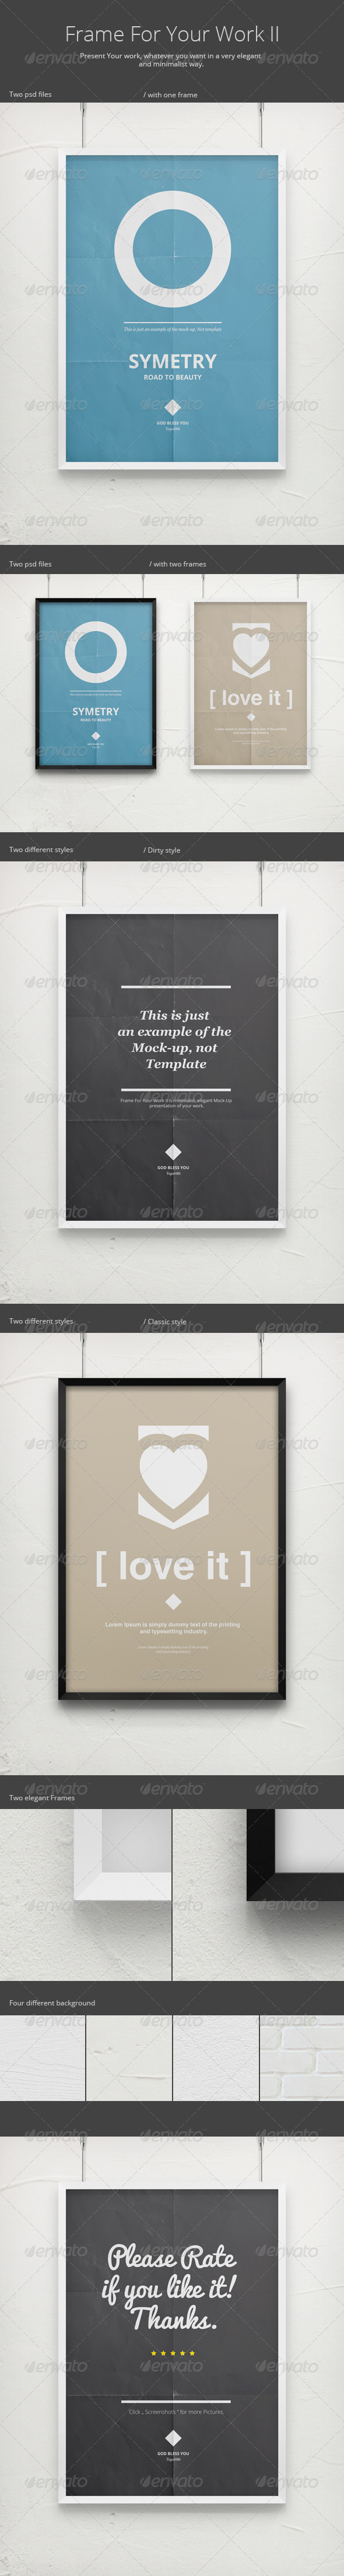 Frame For Your Work II - Poster Mock-Up - Posters Print